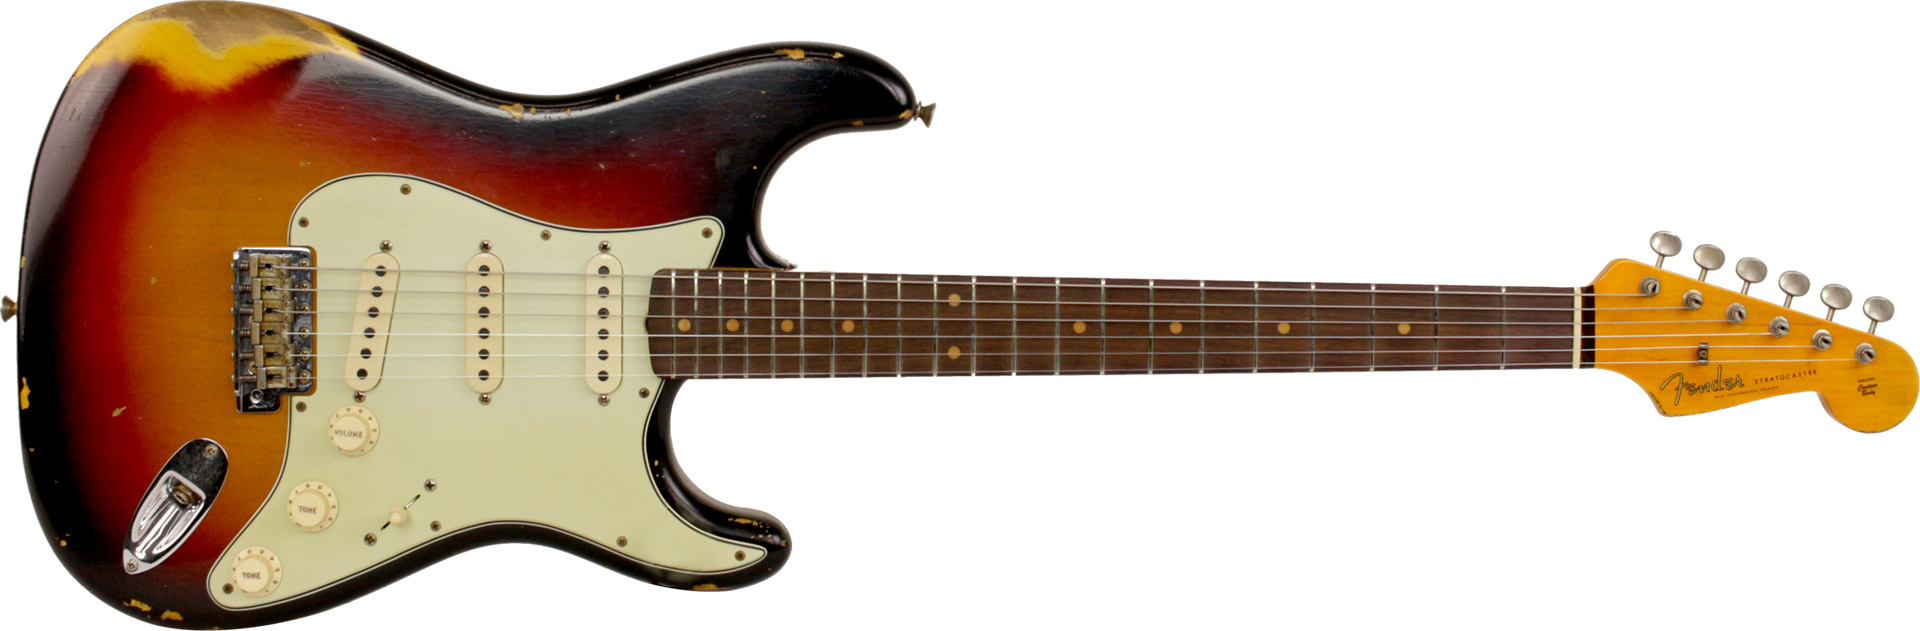 GUITARRA FENDER 59 STRATOCASTER TIME MACHINE HEAVY RELIC LTD EDITION 923-5000-821 AGED 3TSB